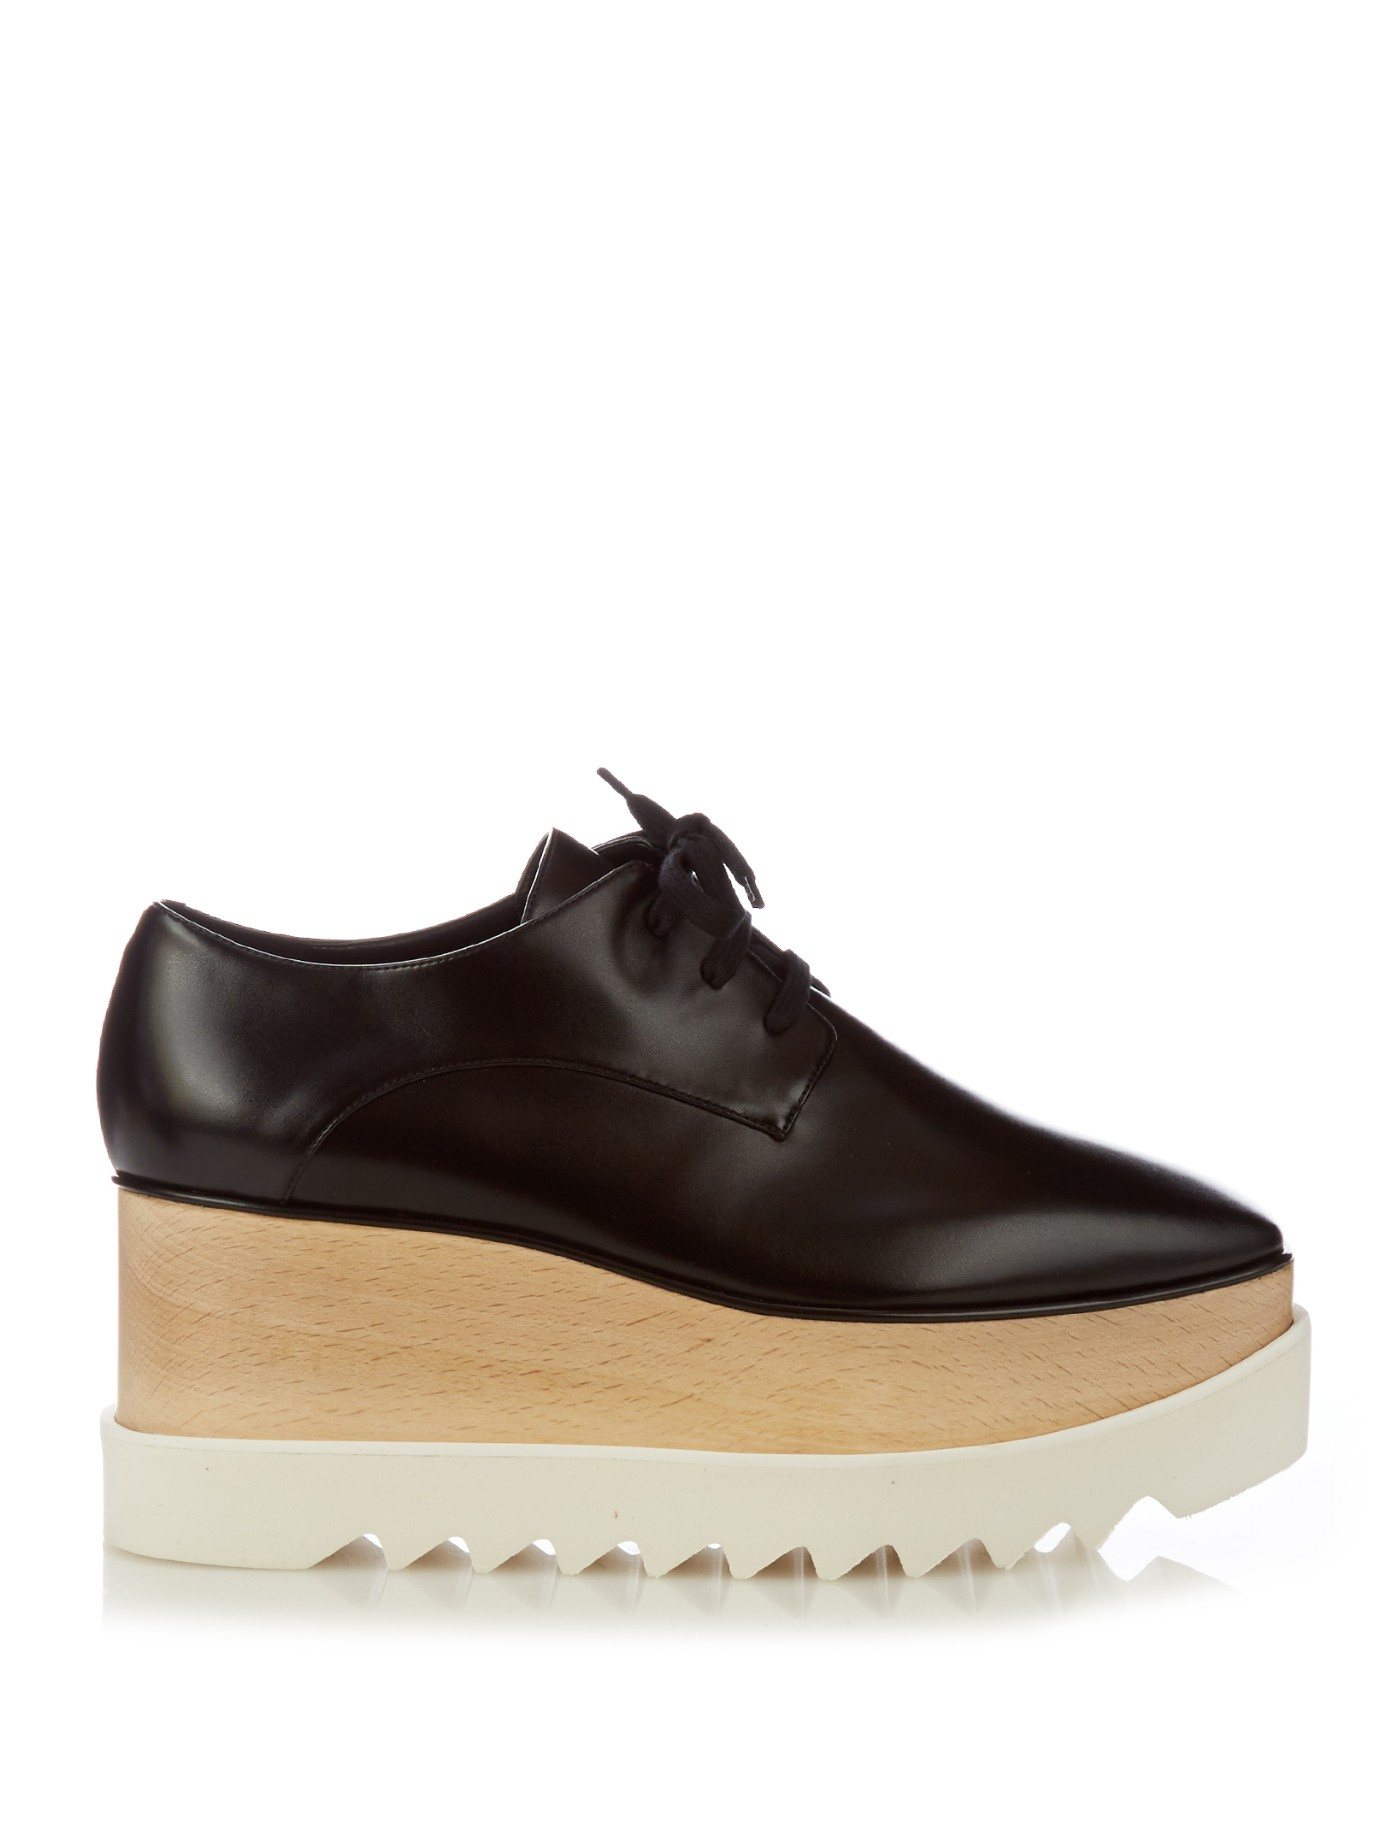 Stella mccartney Elyse Lace-Up Platform Shoes in Black | Lyst